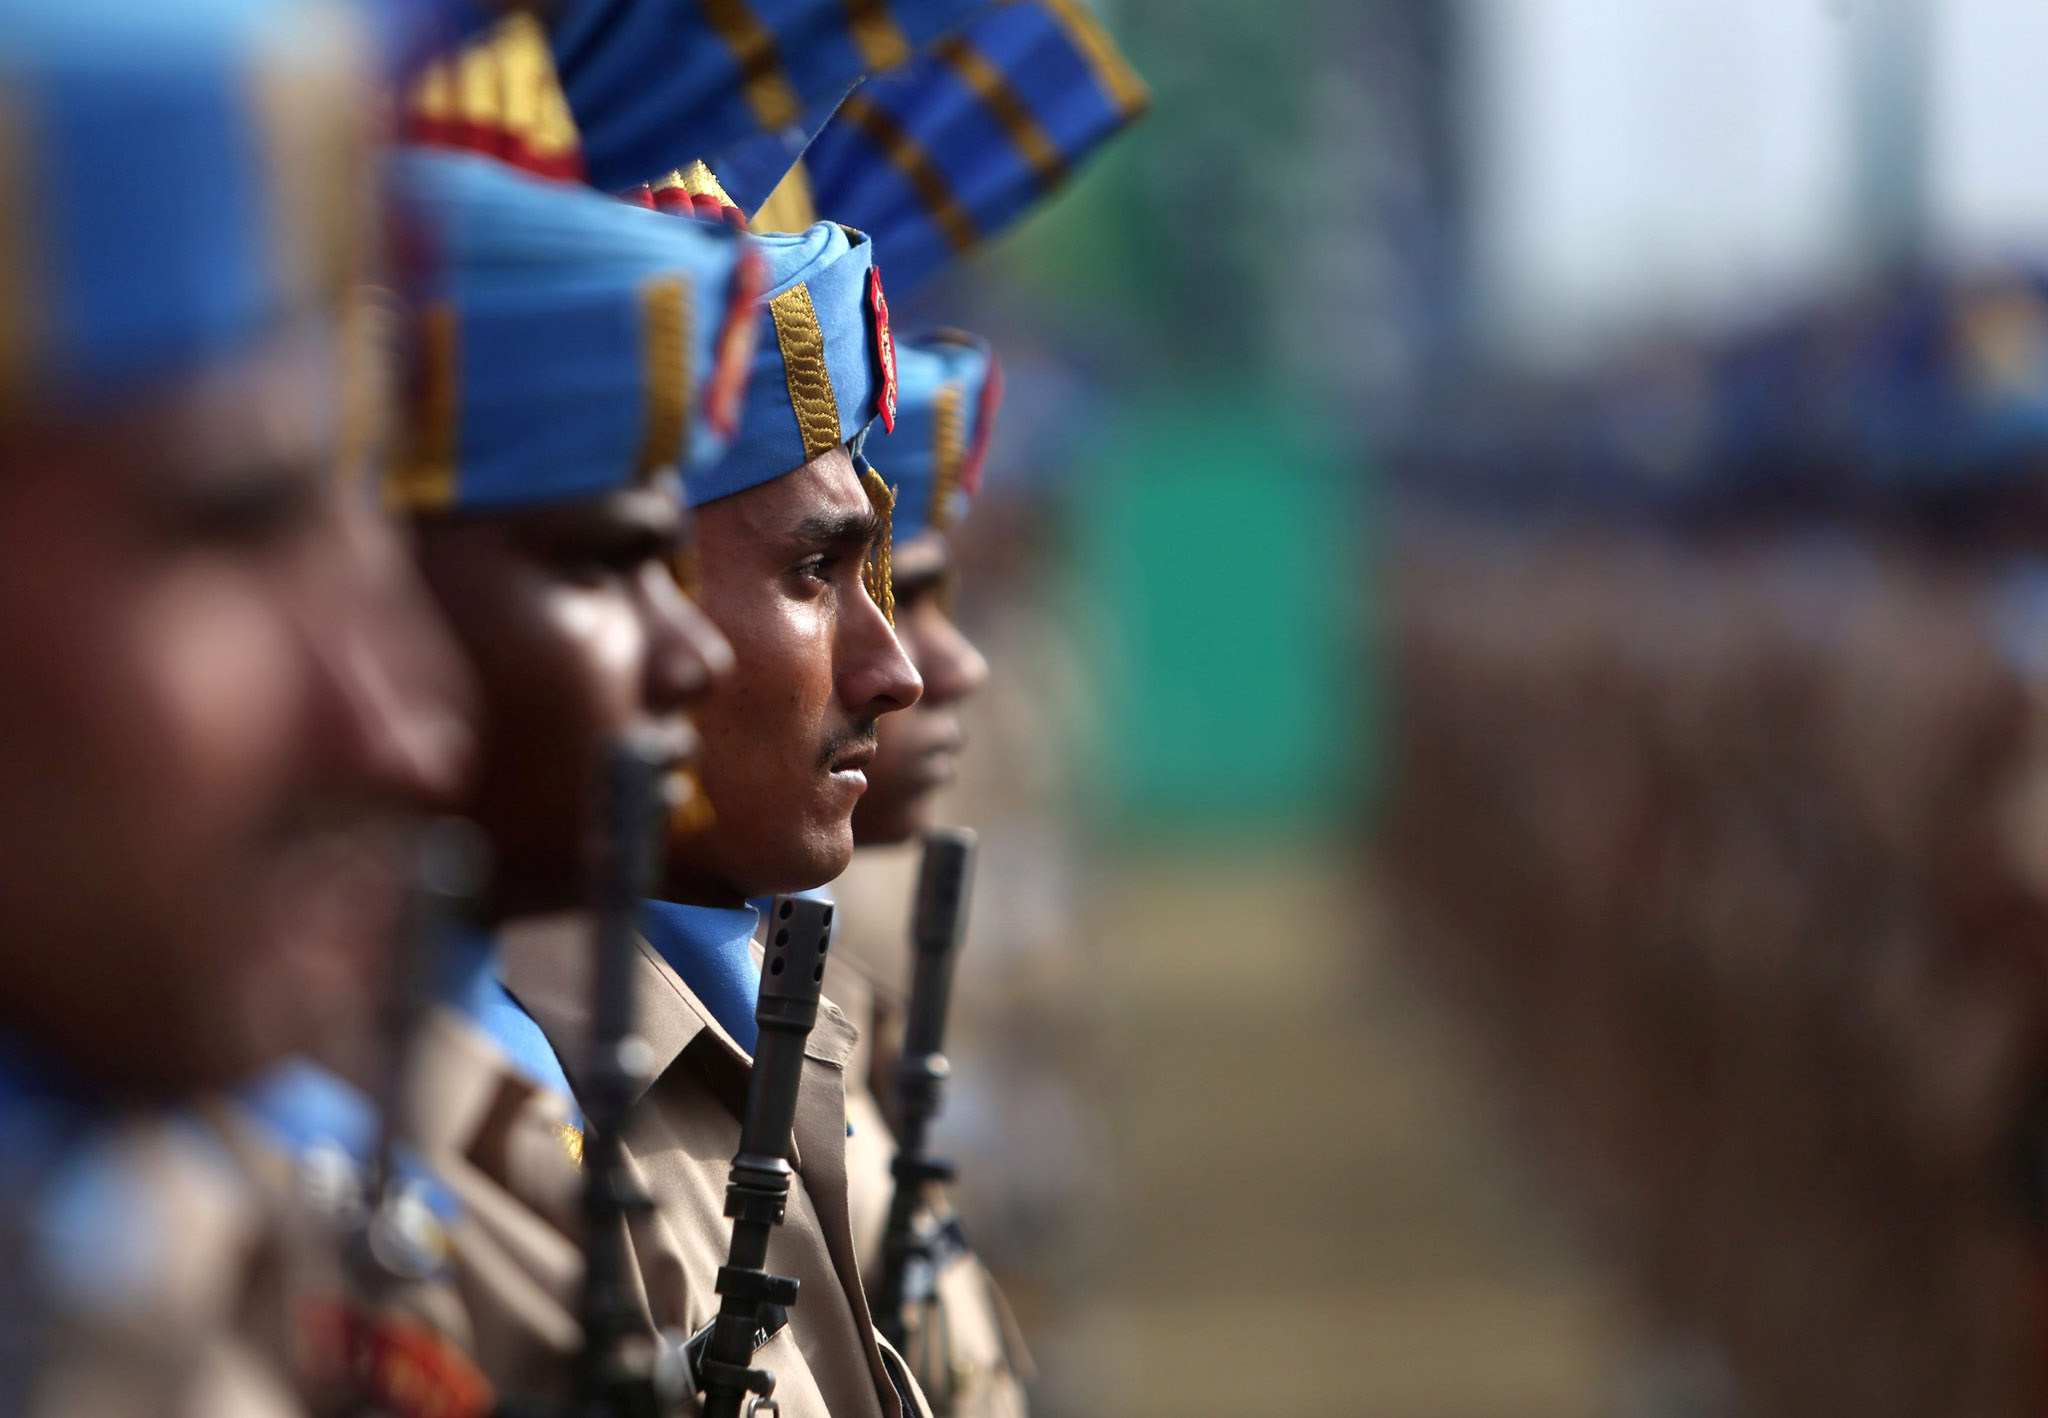 Passing Out Parade in Humhama...epa04747442 New recruits of the Indian Central Reserve Police Force (CRPF) take part in the passing out parade in Humhama, on the outskirts of Srinagar, the summer capital of Indian Kashmir, India, 14 May 2015. A total of 341 recruits were formally inducted into the CRPF, an Indian paramilitary force, after completing a 44-weeks training in physical fitness, weapon handling, commando operations and counter insurgency.  EPA/FAROOQ KHAN